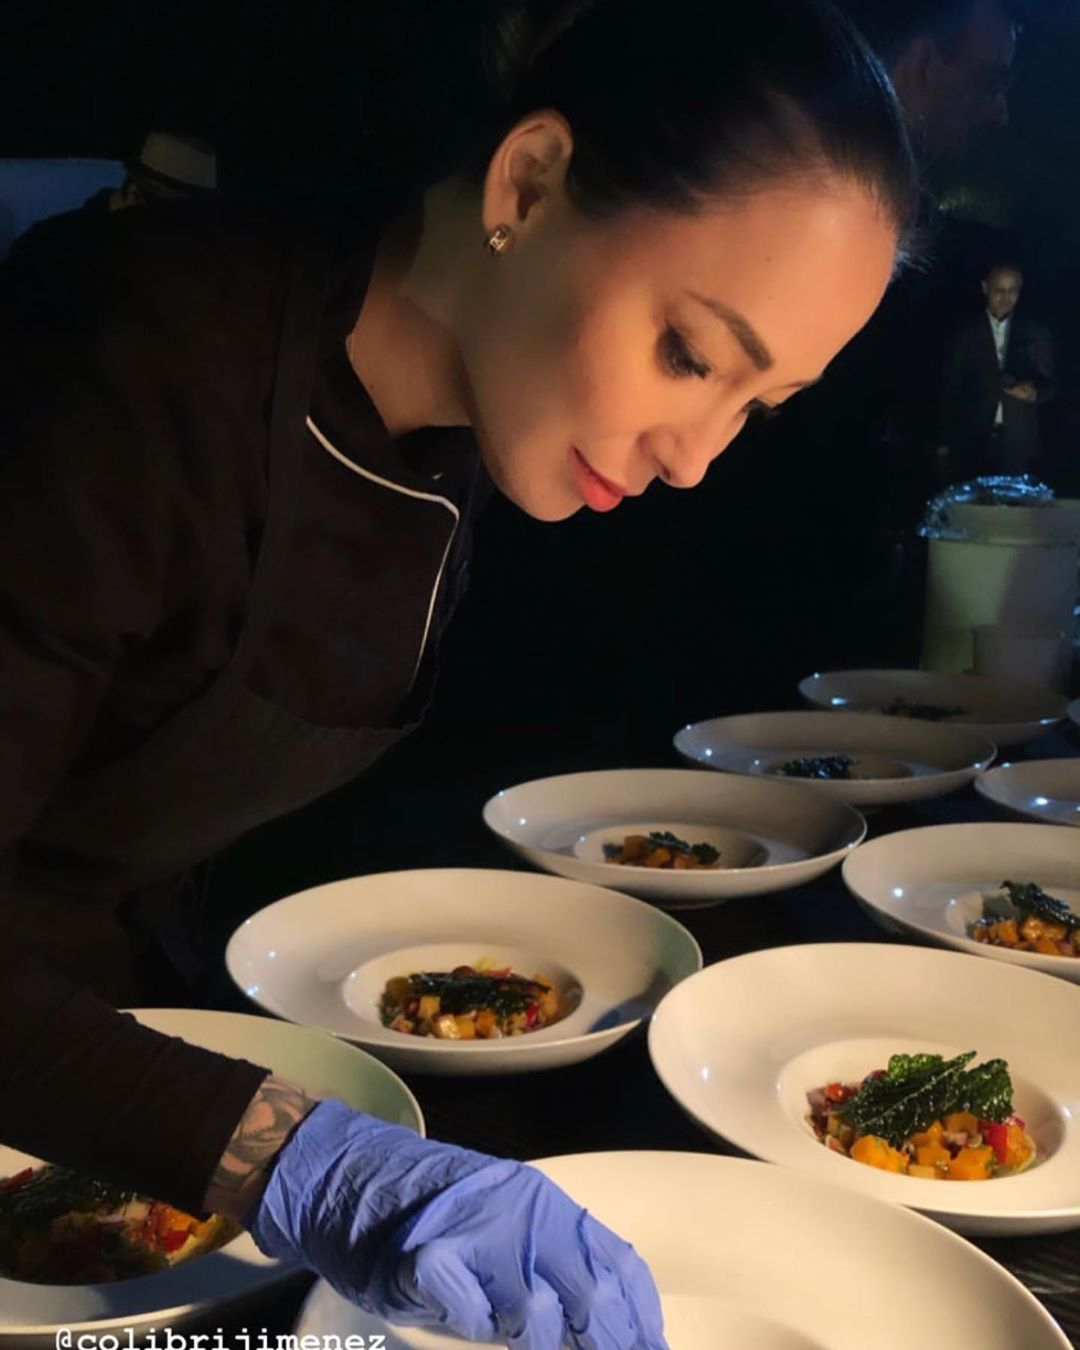 Chef Colibri Jimenez in India